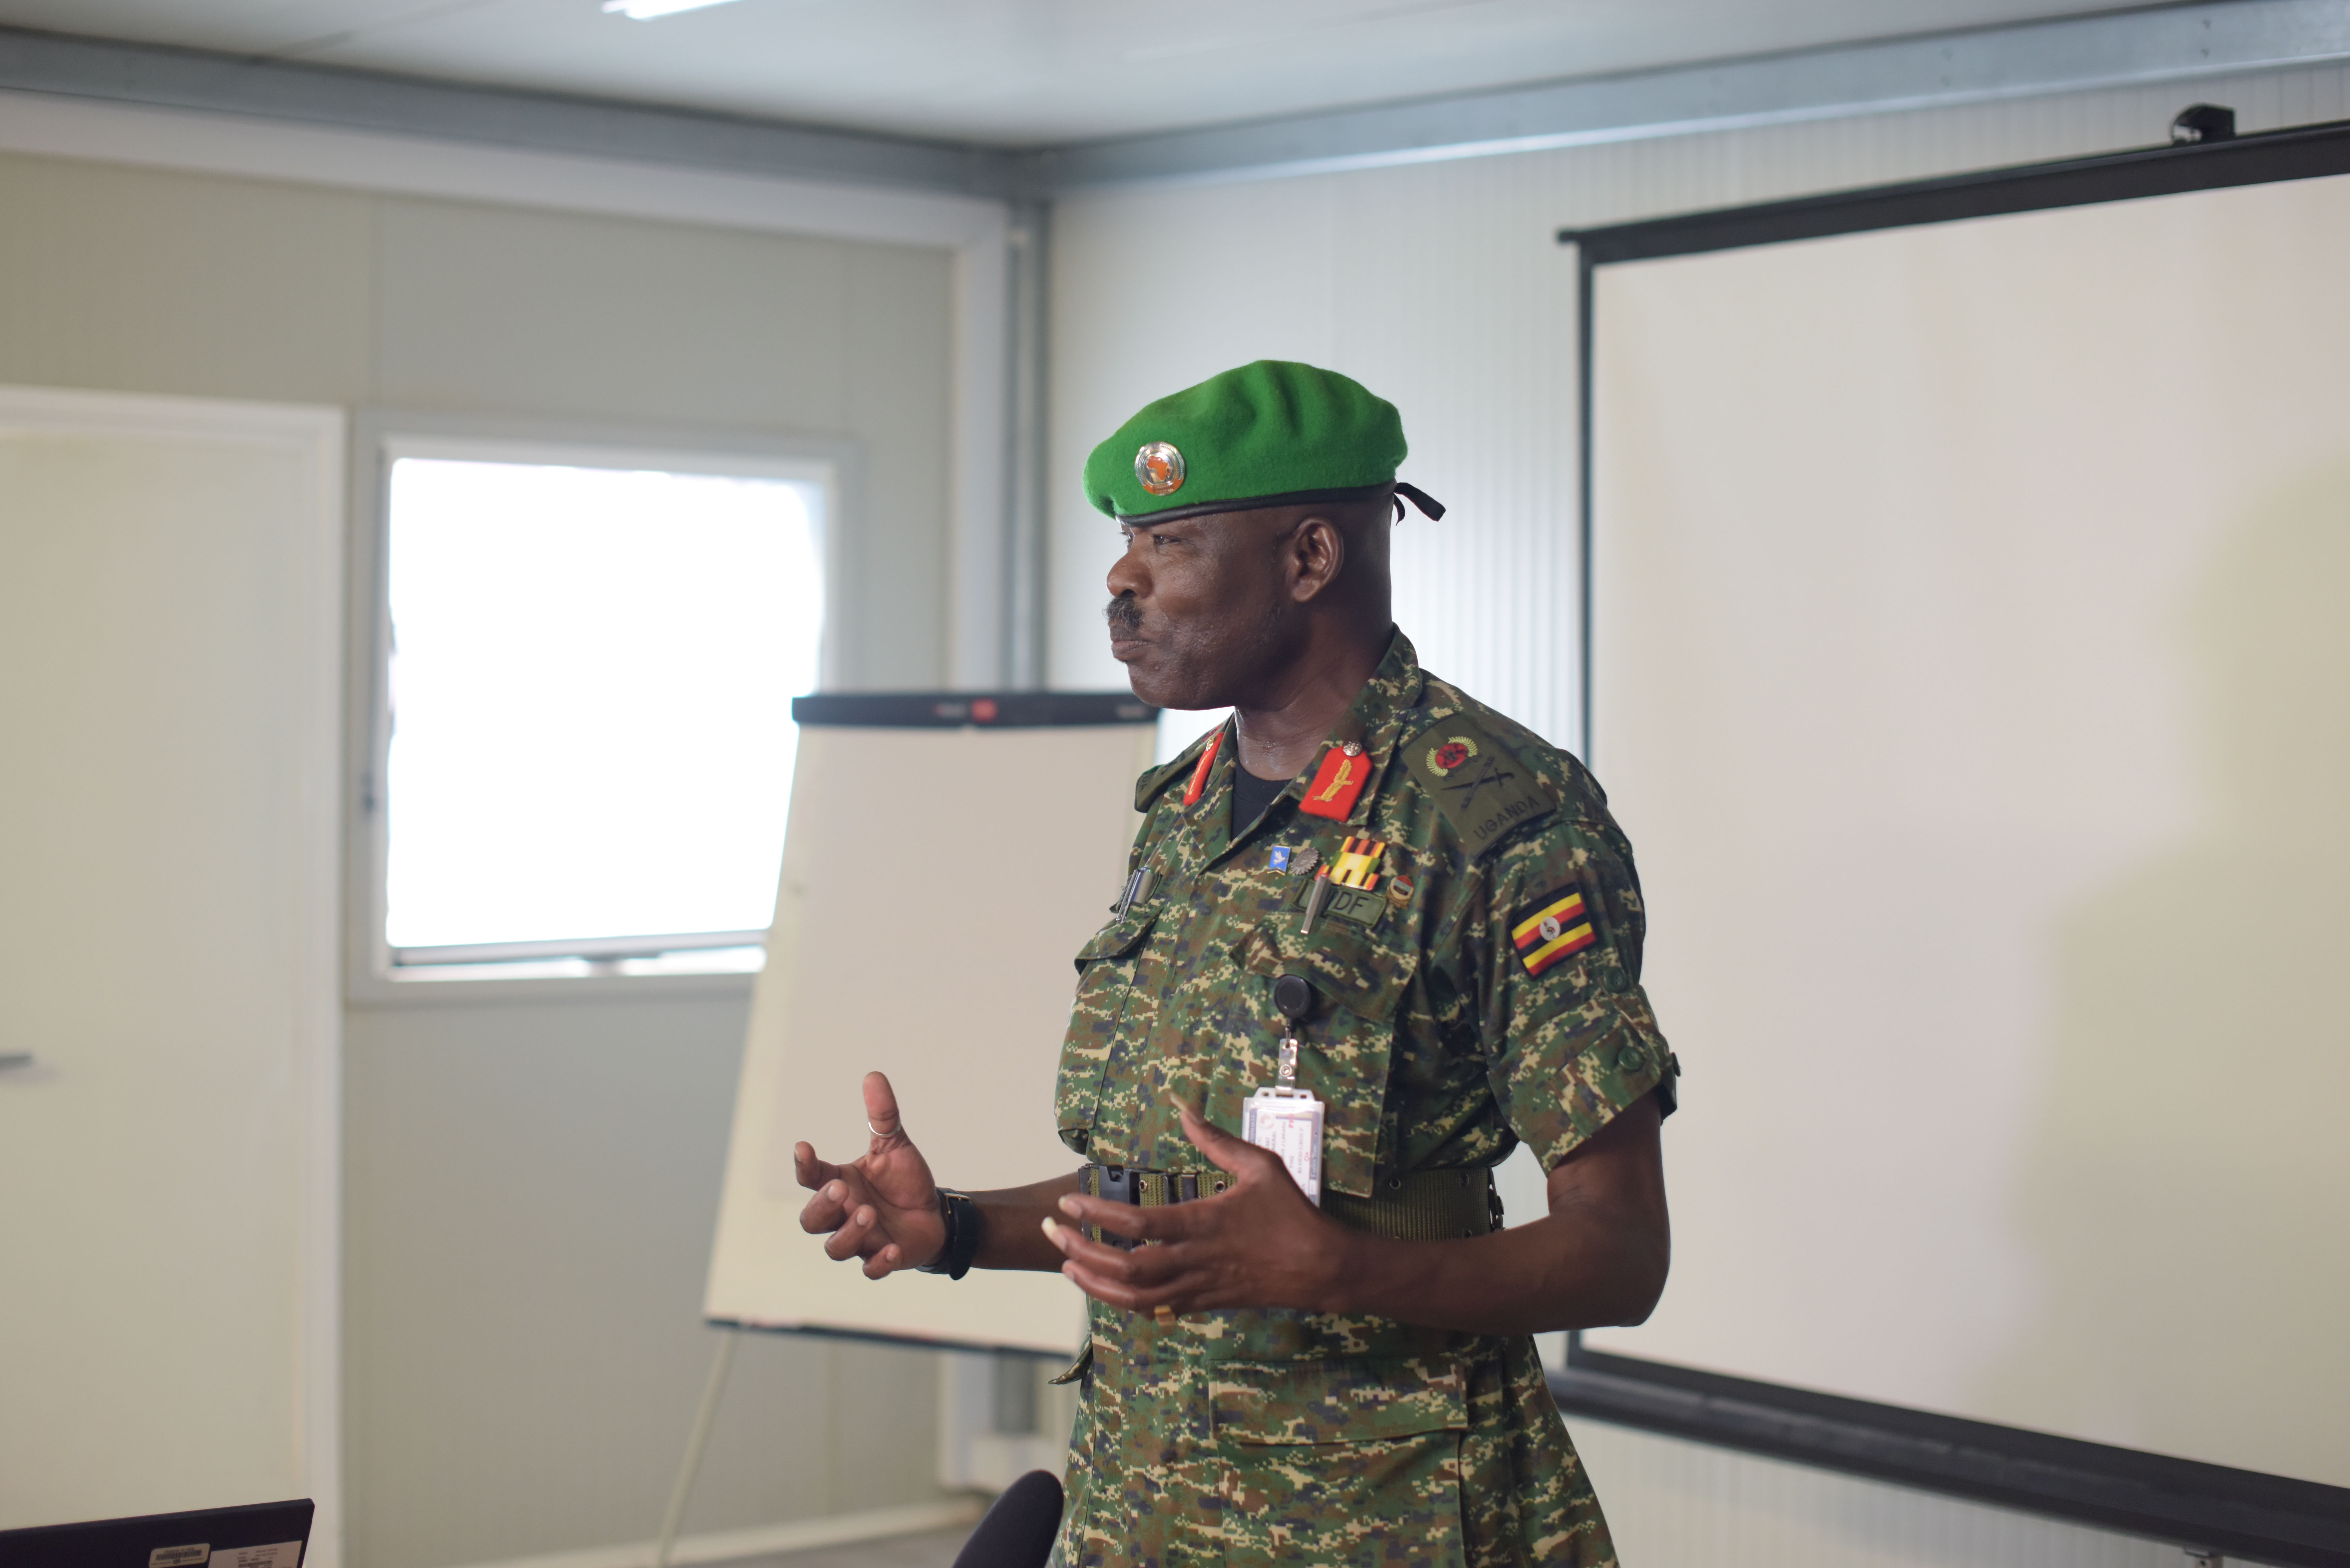 Lt. Gen. James Nakibus Lakara, the AMISOM Deputy Force Commander in charge of Operations and Plans,  addresses newly deployed military officers serving under the African Union Mission in Somalia (AMISOM), during the opening session of an induction training held in Mogadishu, Somalia on 4 May 2019. AMISOM Photo / Omar Abdisalan